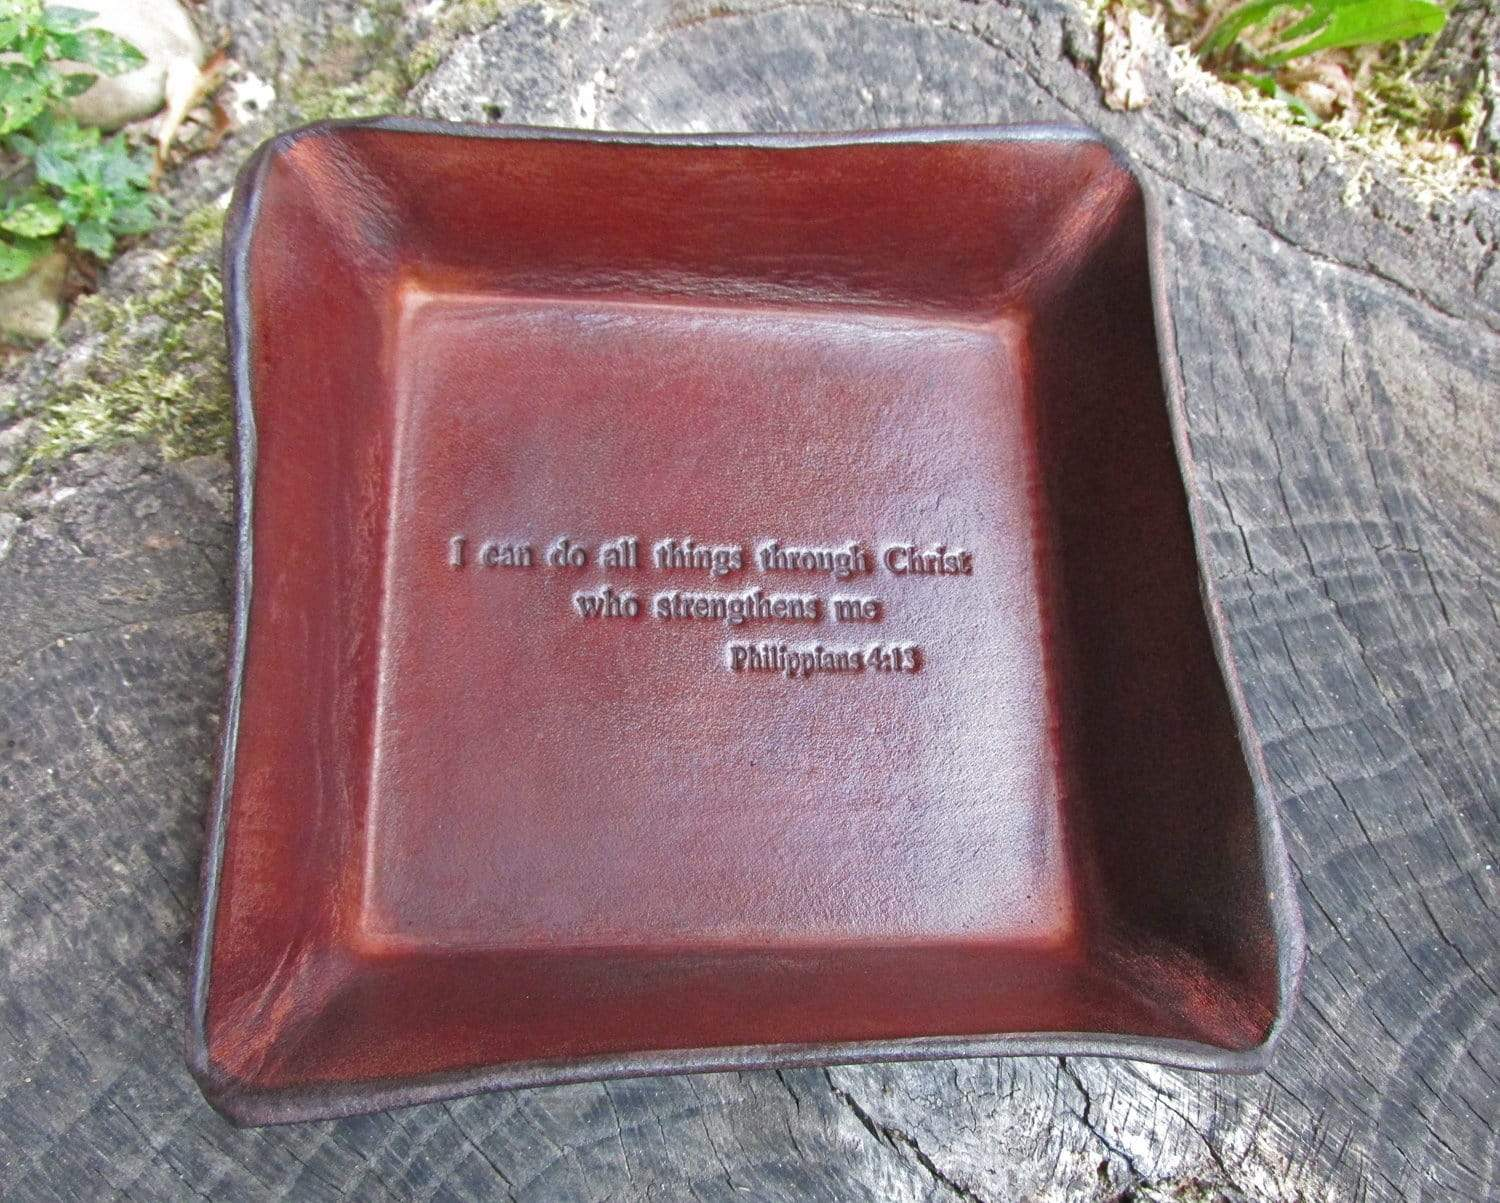 Philippians 4:13 leather valet tray.